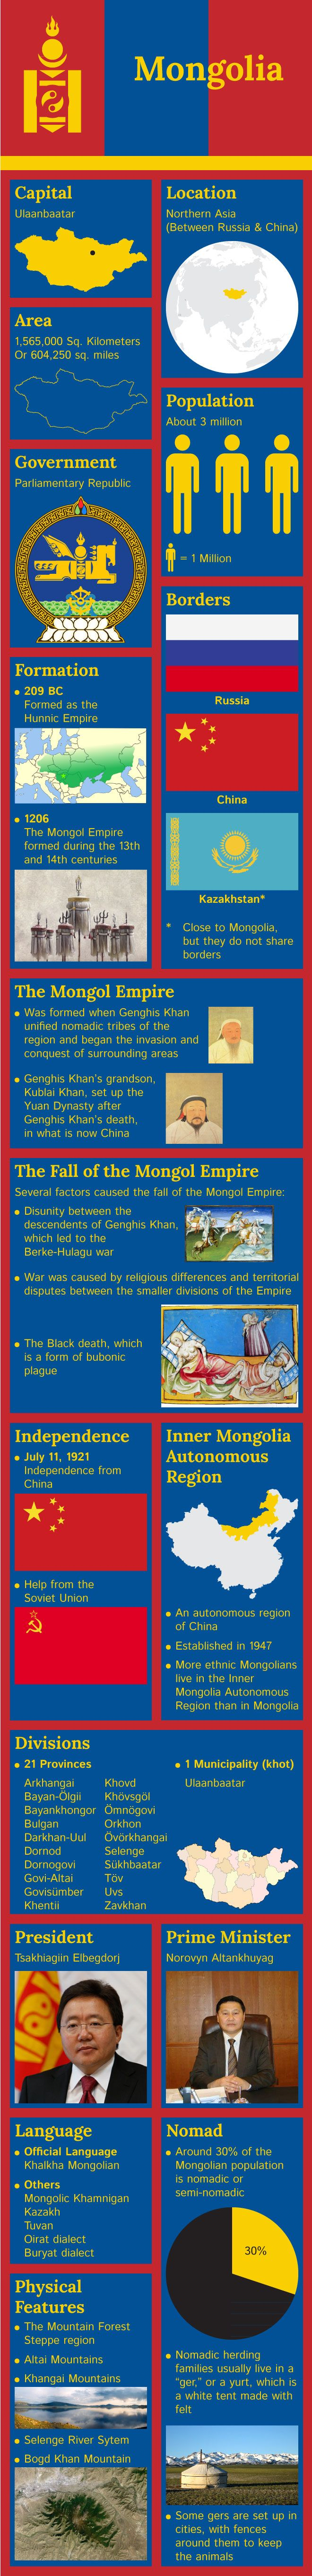 Infographic of Mongolia Facts                                                                                                                                                                                 More